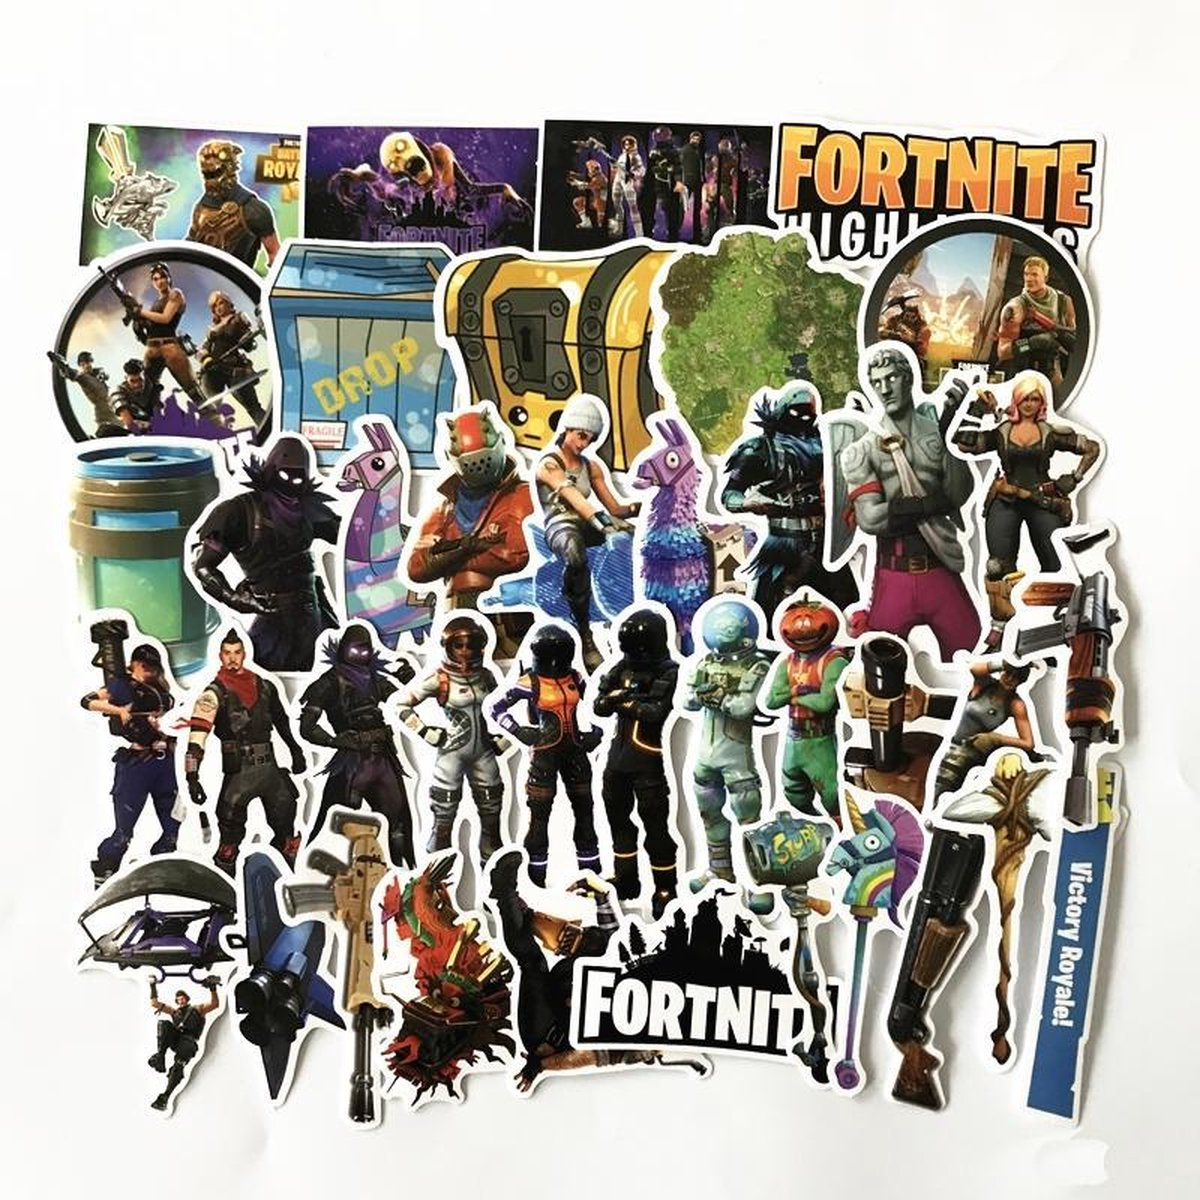 Fortnite stickers - Coole mix met 40 Battle Royale gaming stickers voor laptop, playstation, agenda,